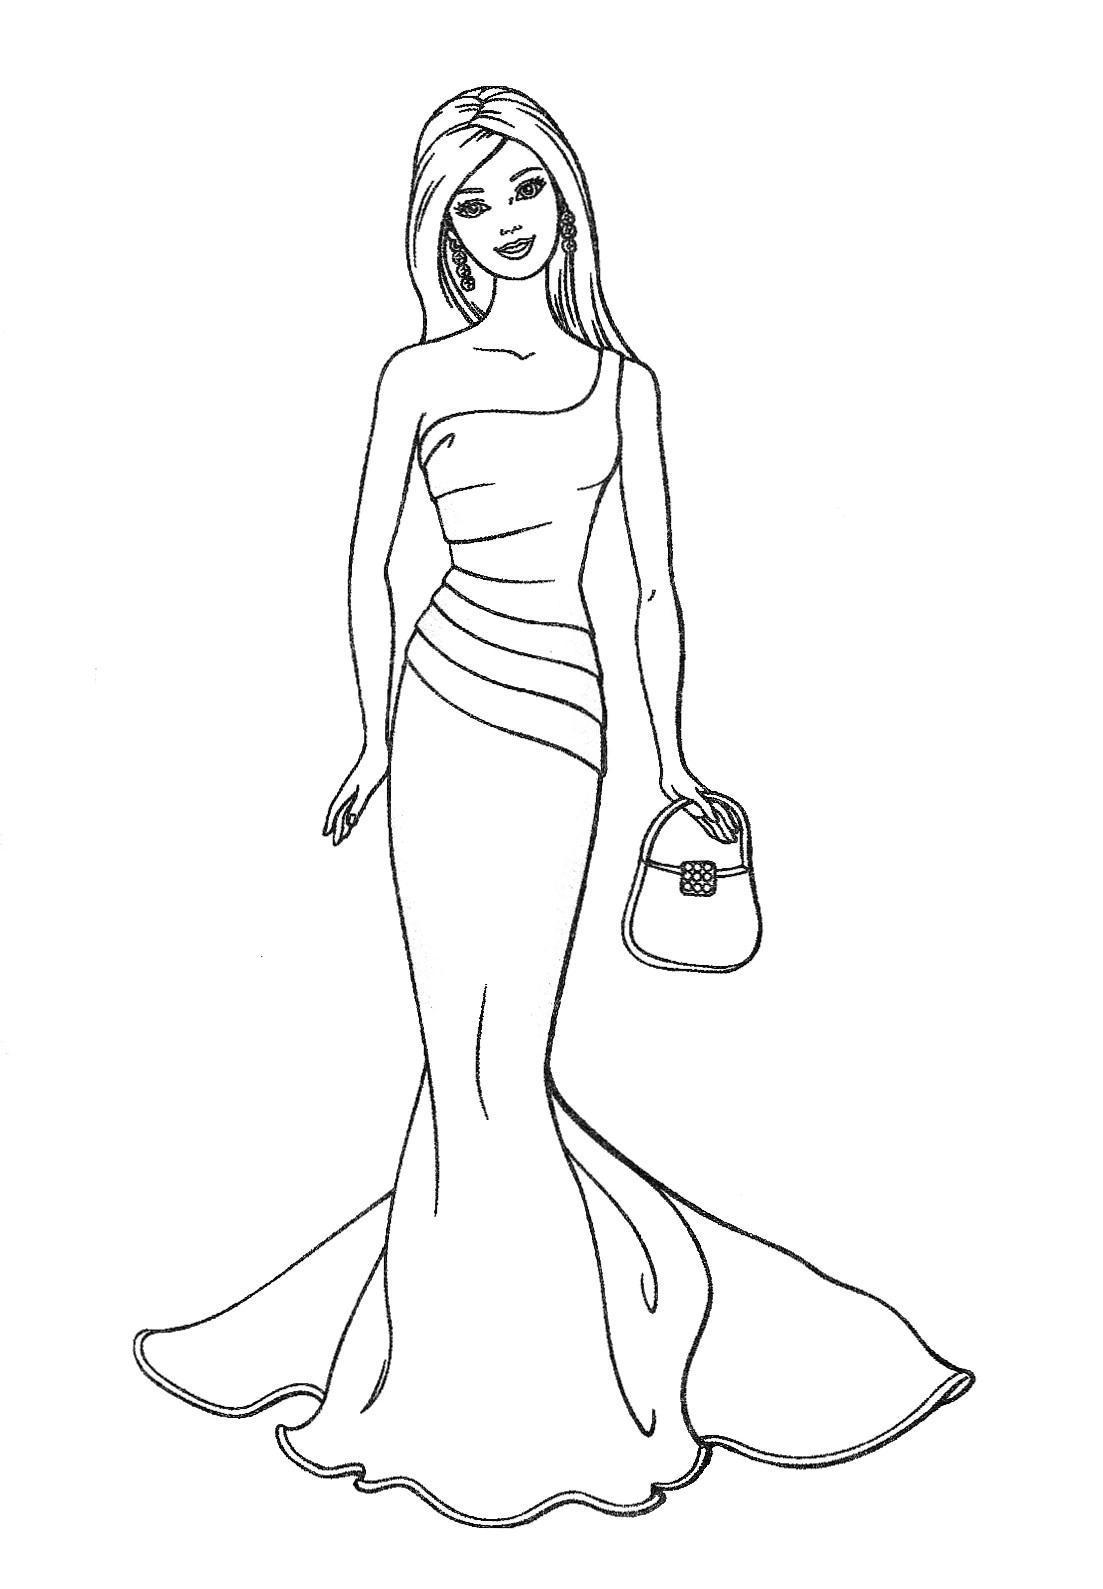 Barbie.com Coloring Pages